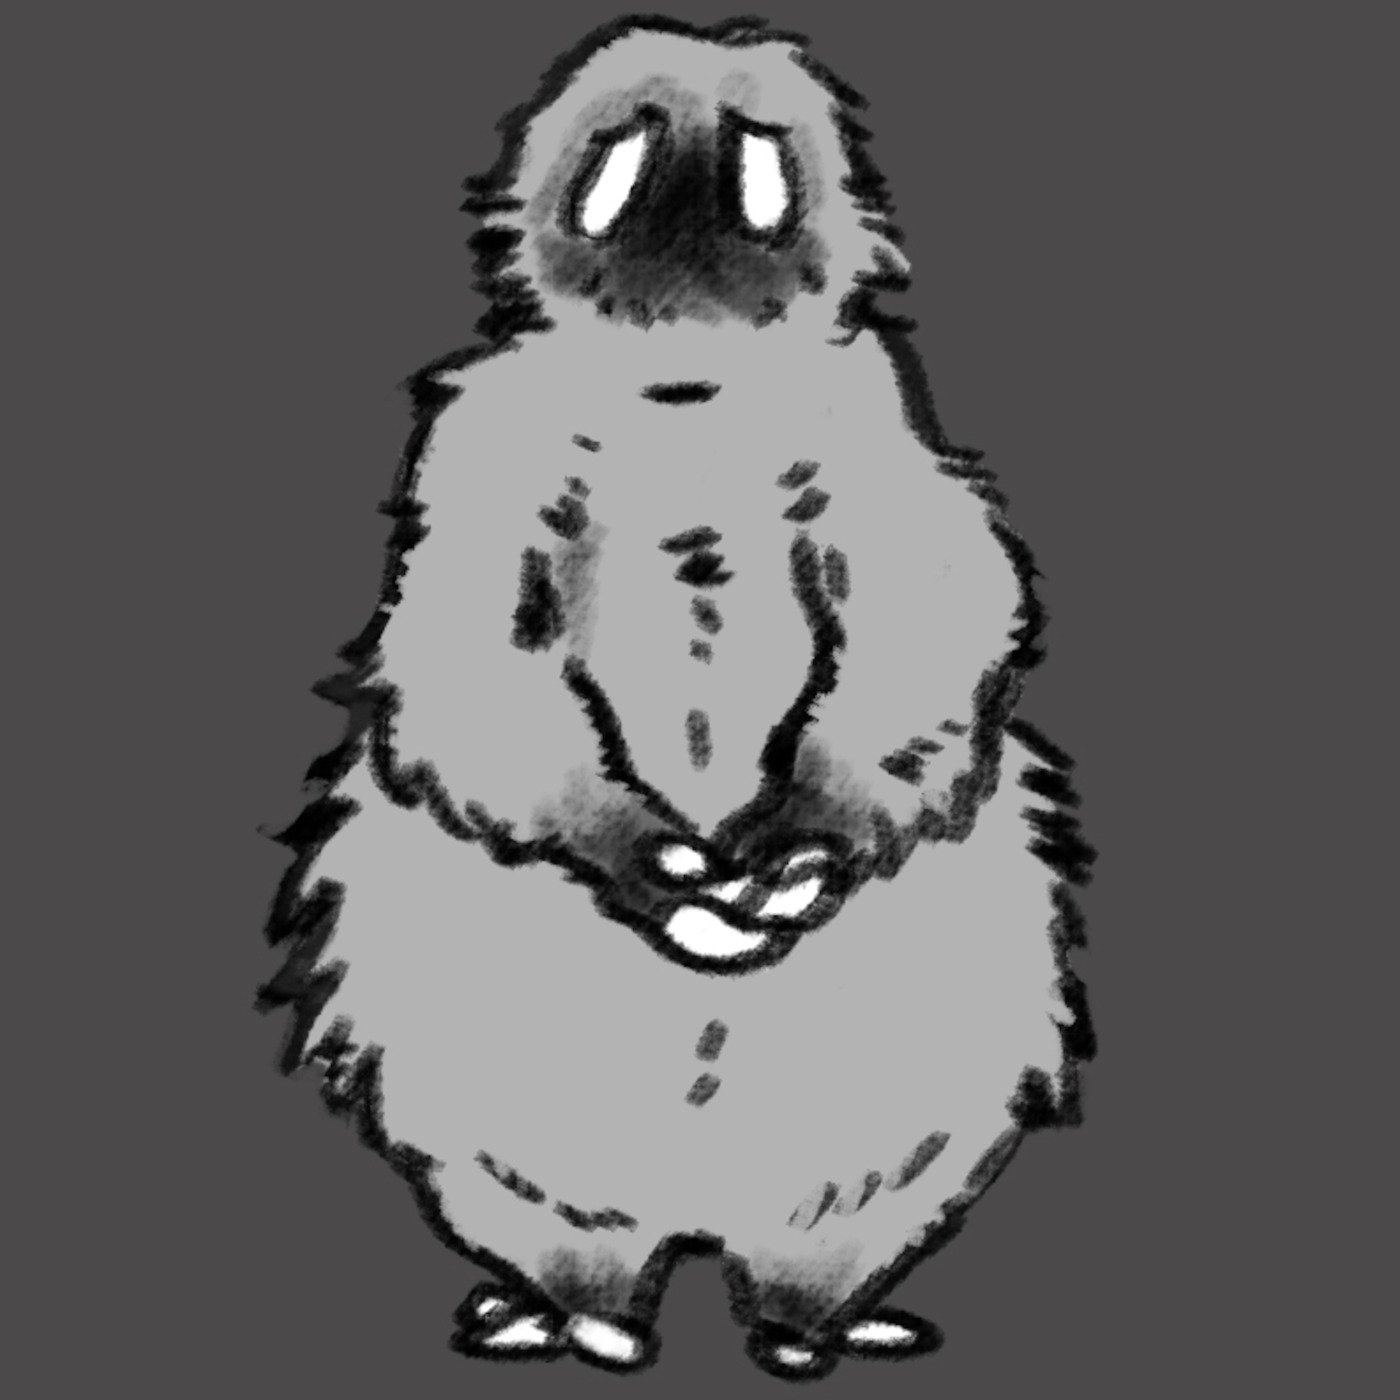 A Disused Yeti